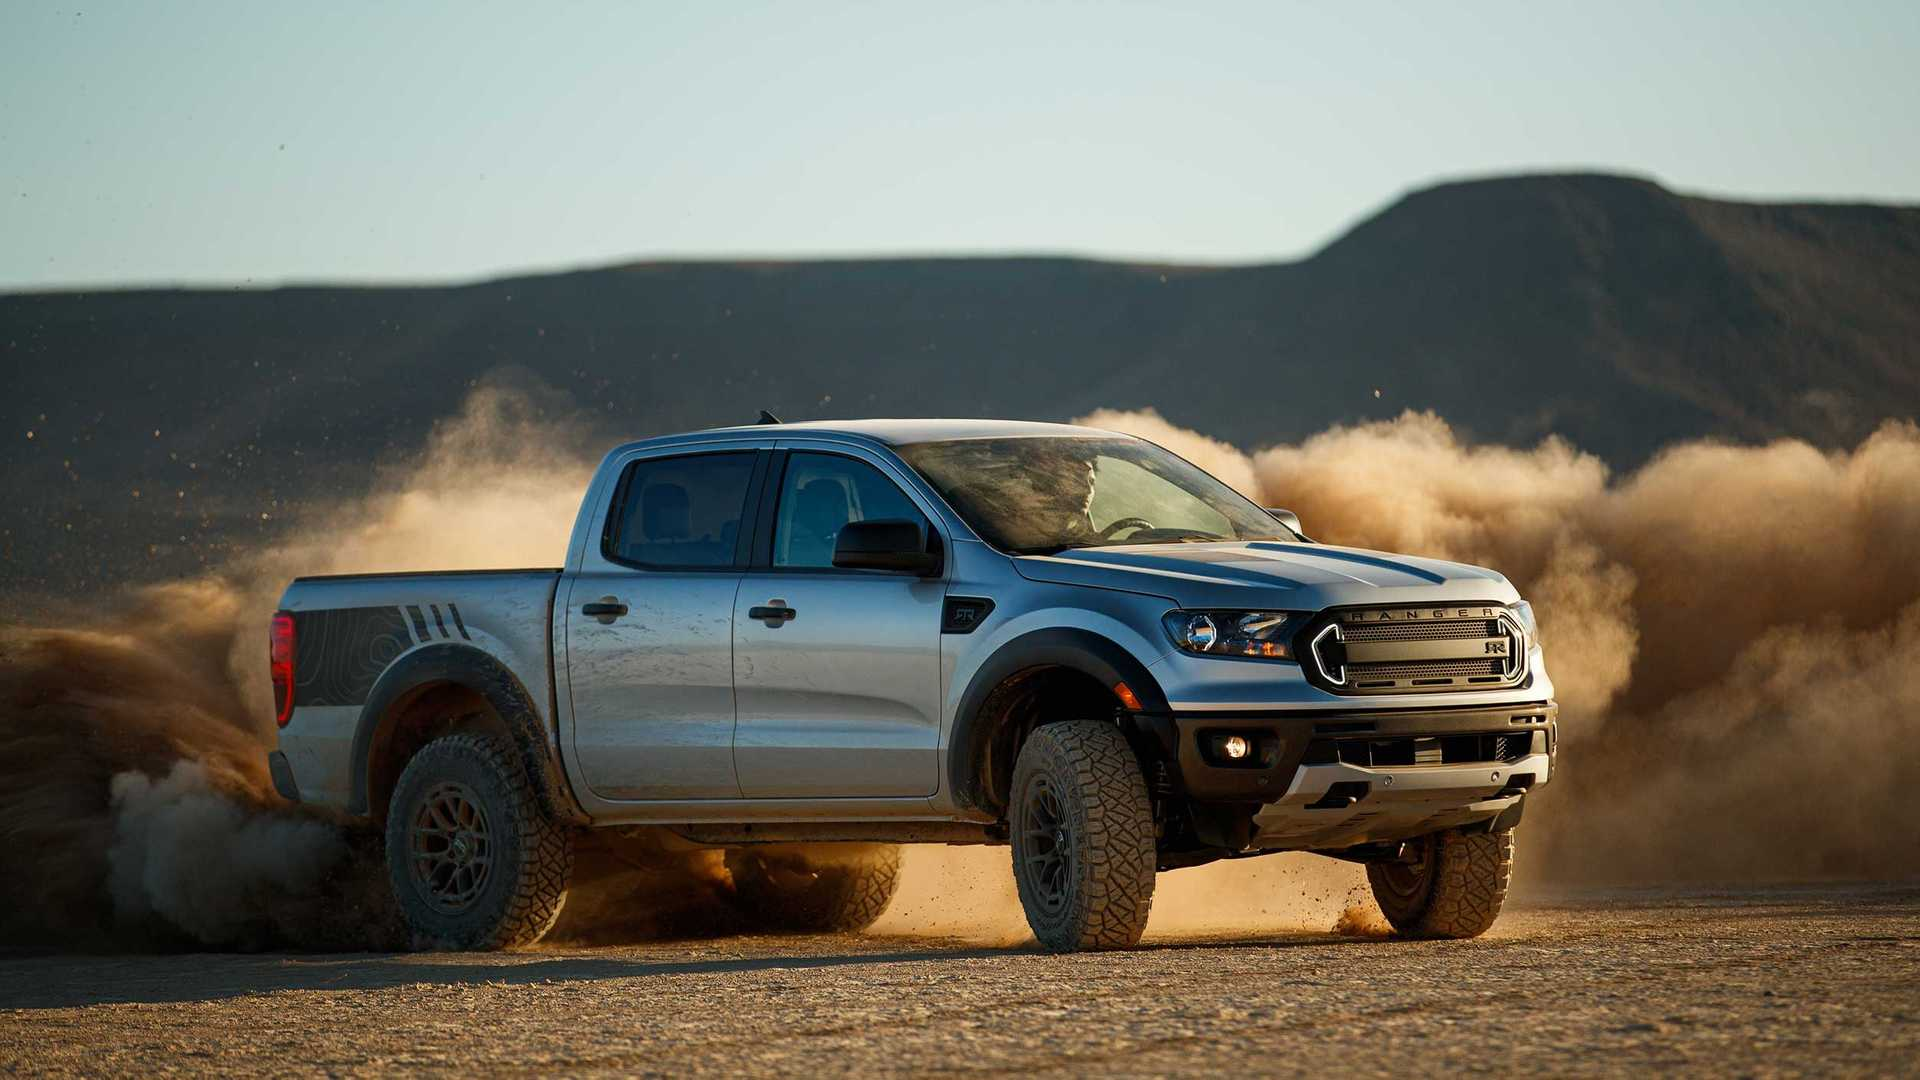 2020 Ranger Rtr Joins Tuners Lineup Of Modified Fords